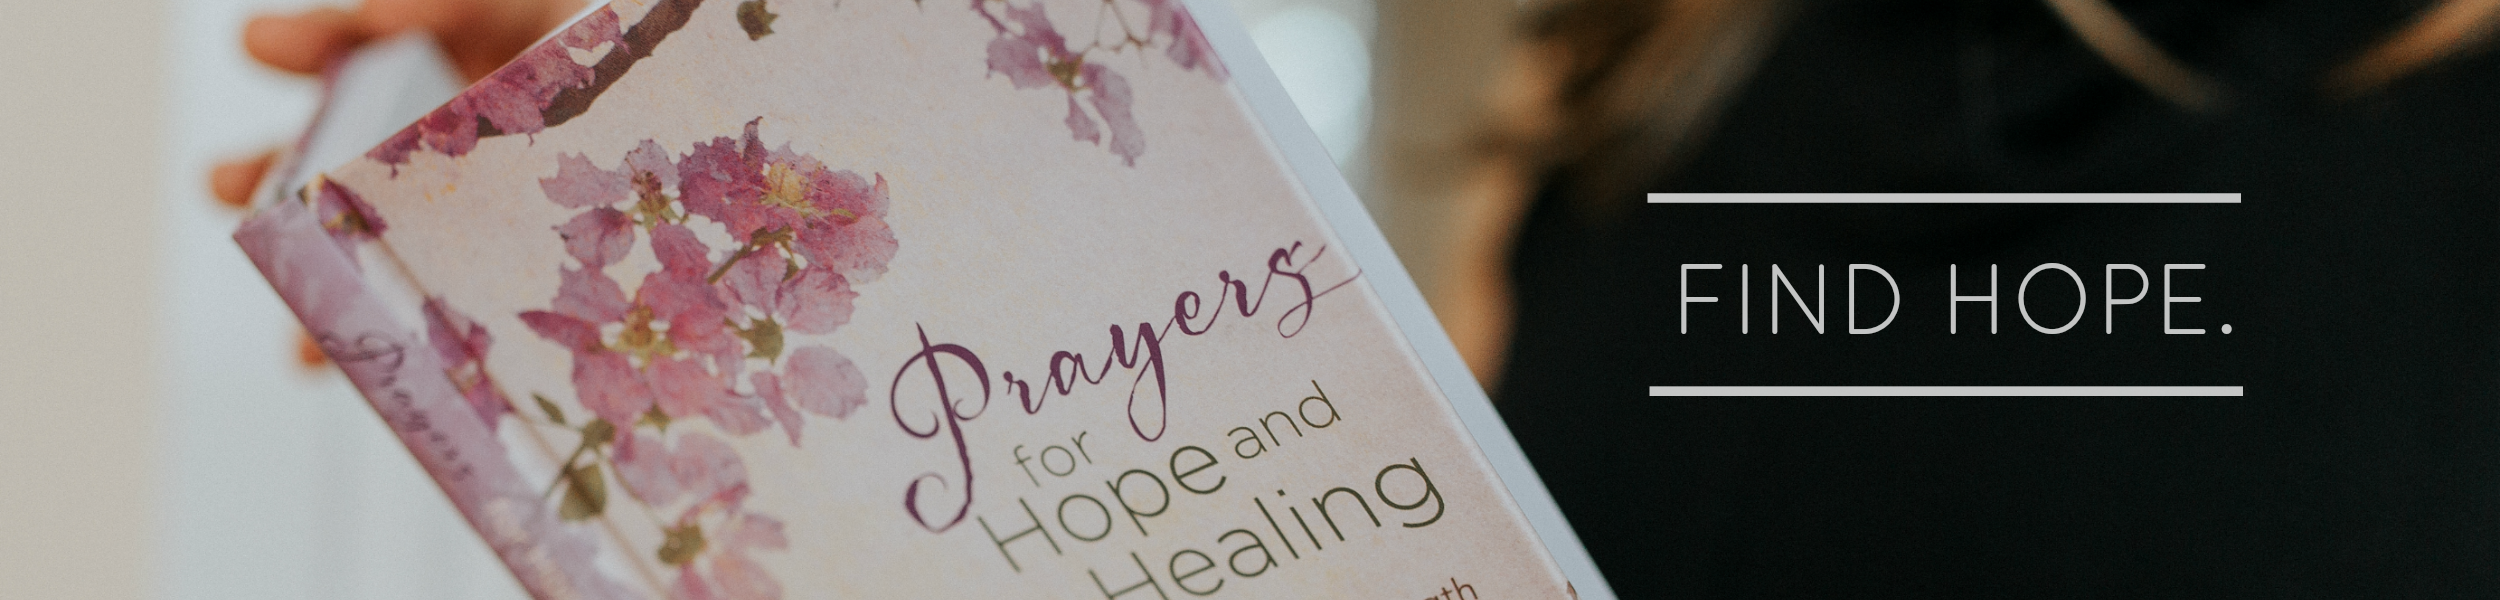 Find Hope | Prayers for Hope and Healing